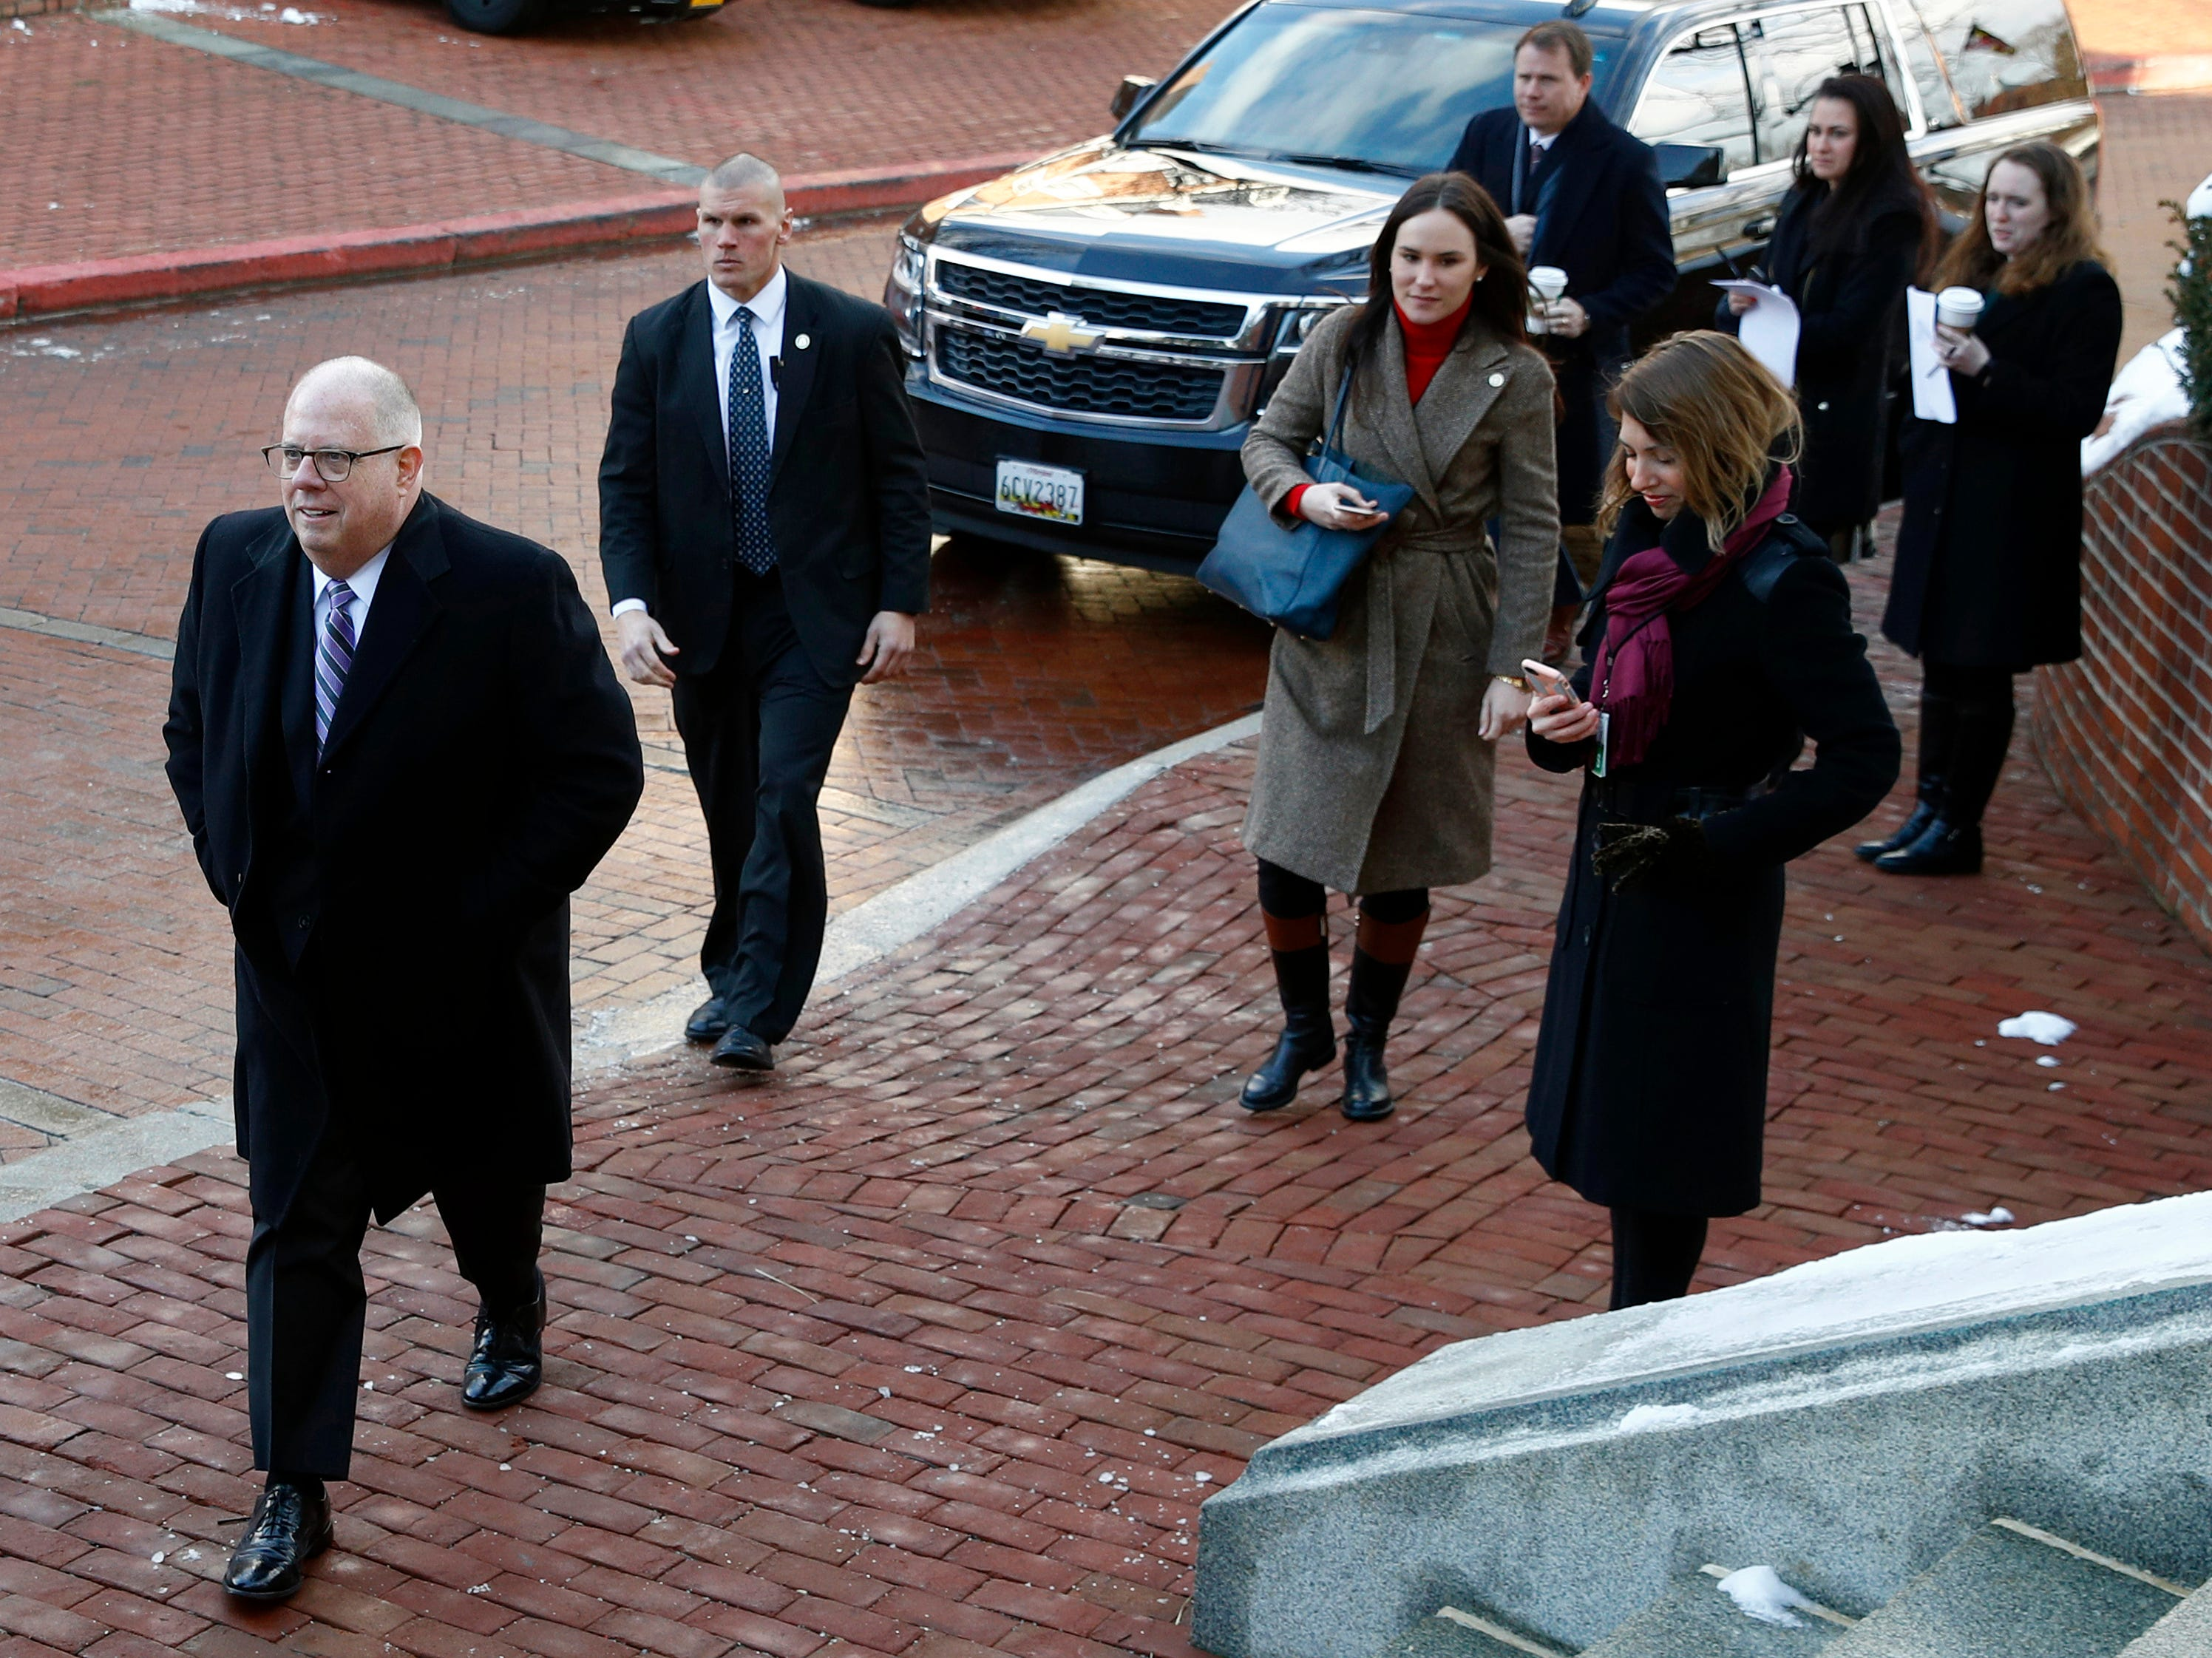 Maryland Gov. Larry Hogan, left, arrives to speak with members of the news media outside the Maryland State House before his inauguration ceremony Wednesday, Jan. 16, 2019, in Annapolis.